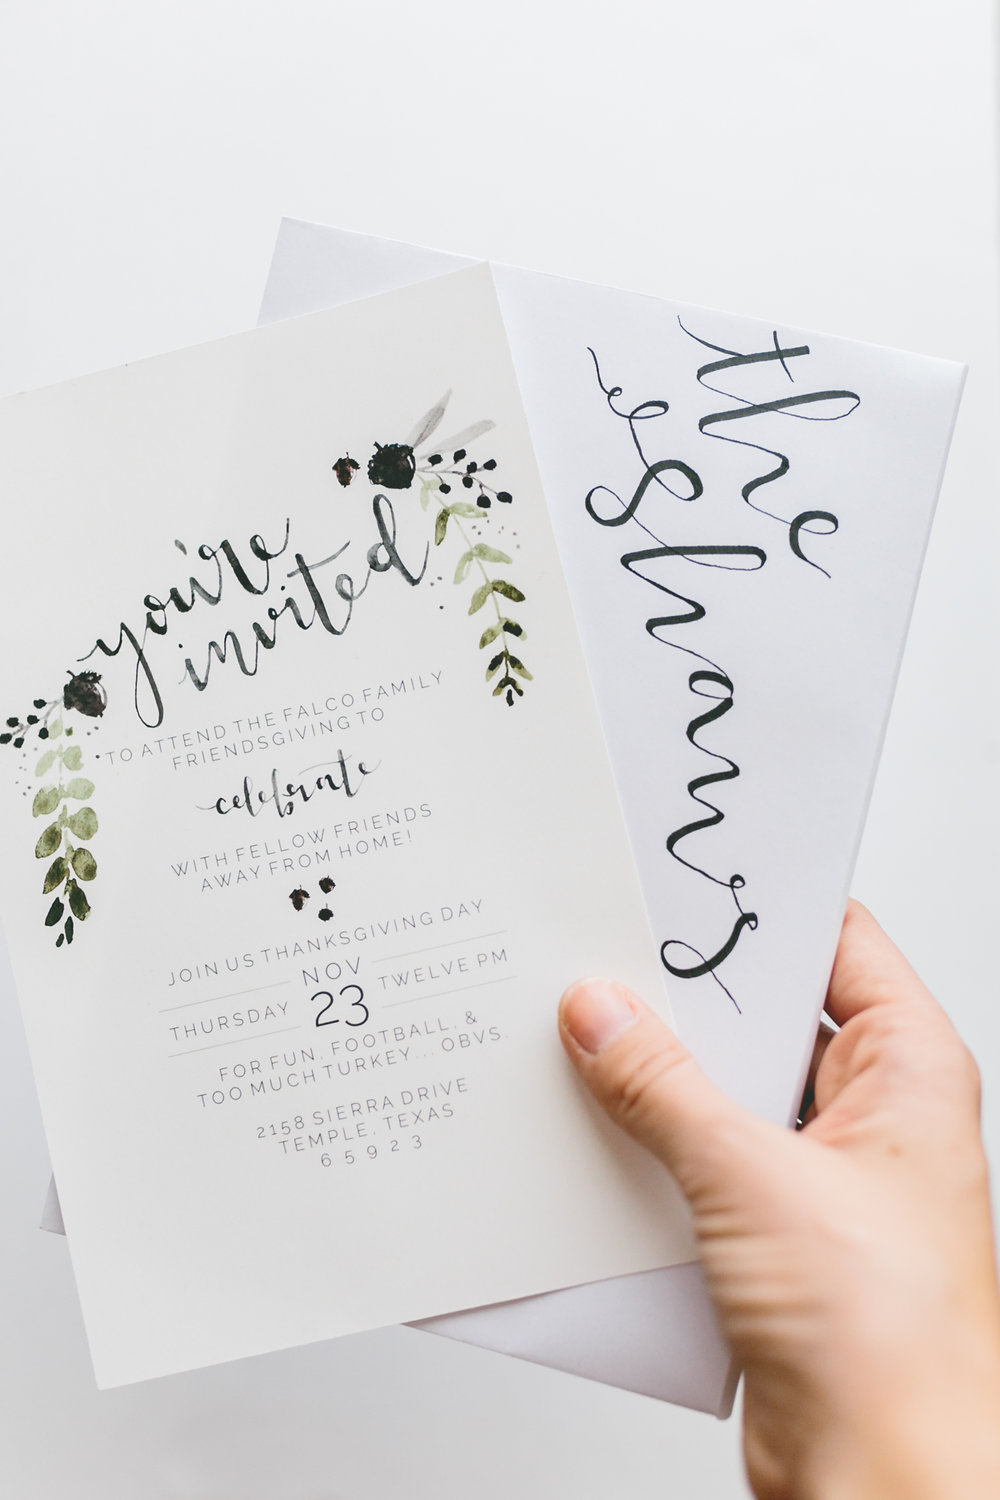 These free, fall hand-painted watercolor graphics and letting will make your thanksgiving invitations really stand out! Also included in the link are leaves, pumpkins, acorns, and apples!